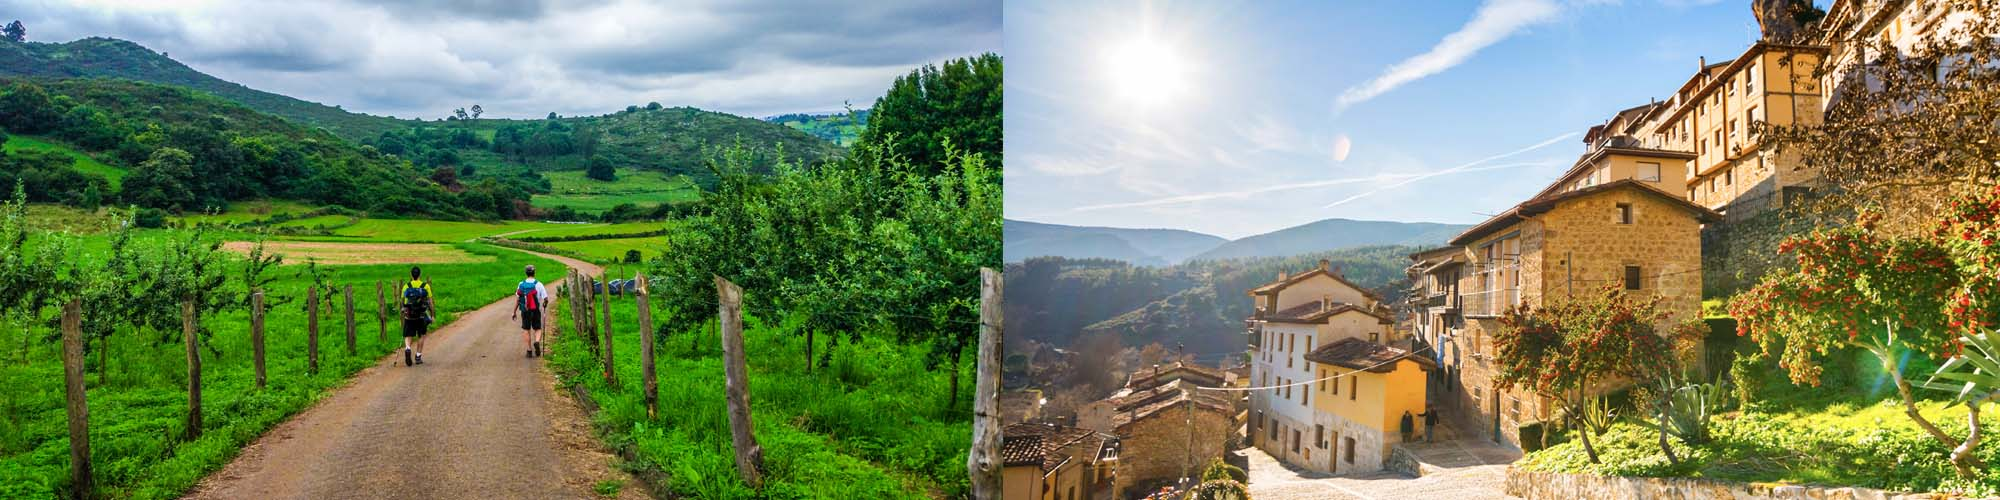 5 Day Camino de Santiago walk Spain